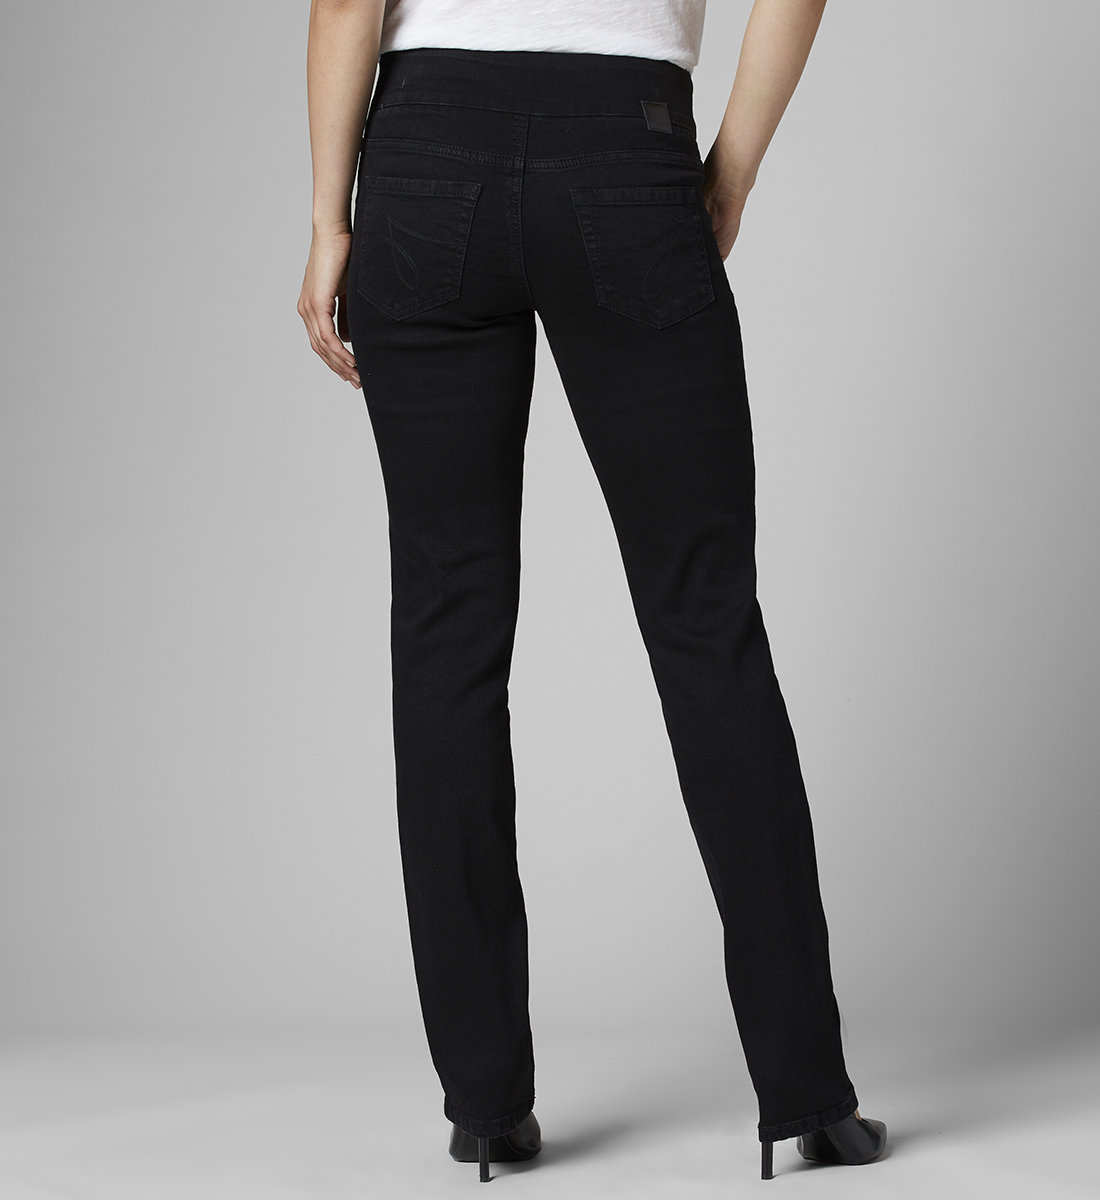 Peri Mid Rise Straight Leg Pull-On Jeans, , hi-res